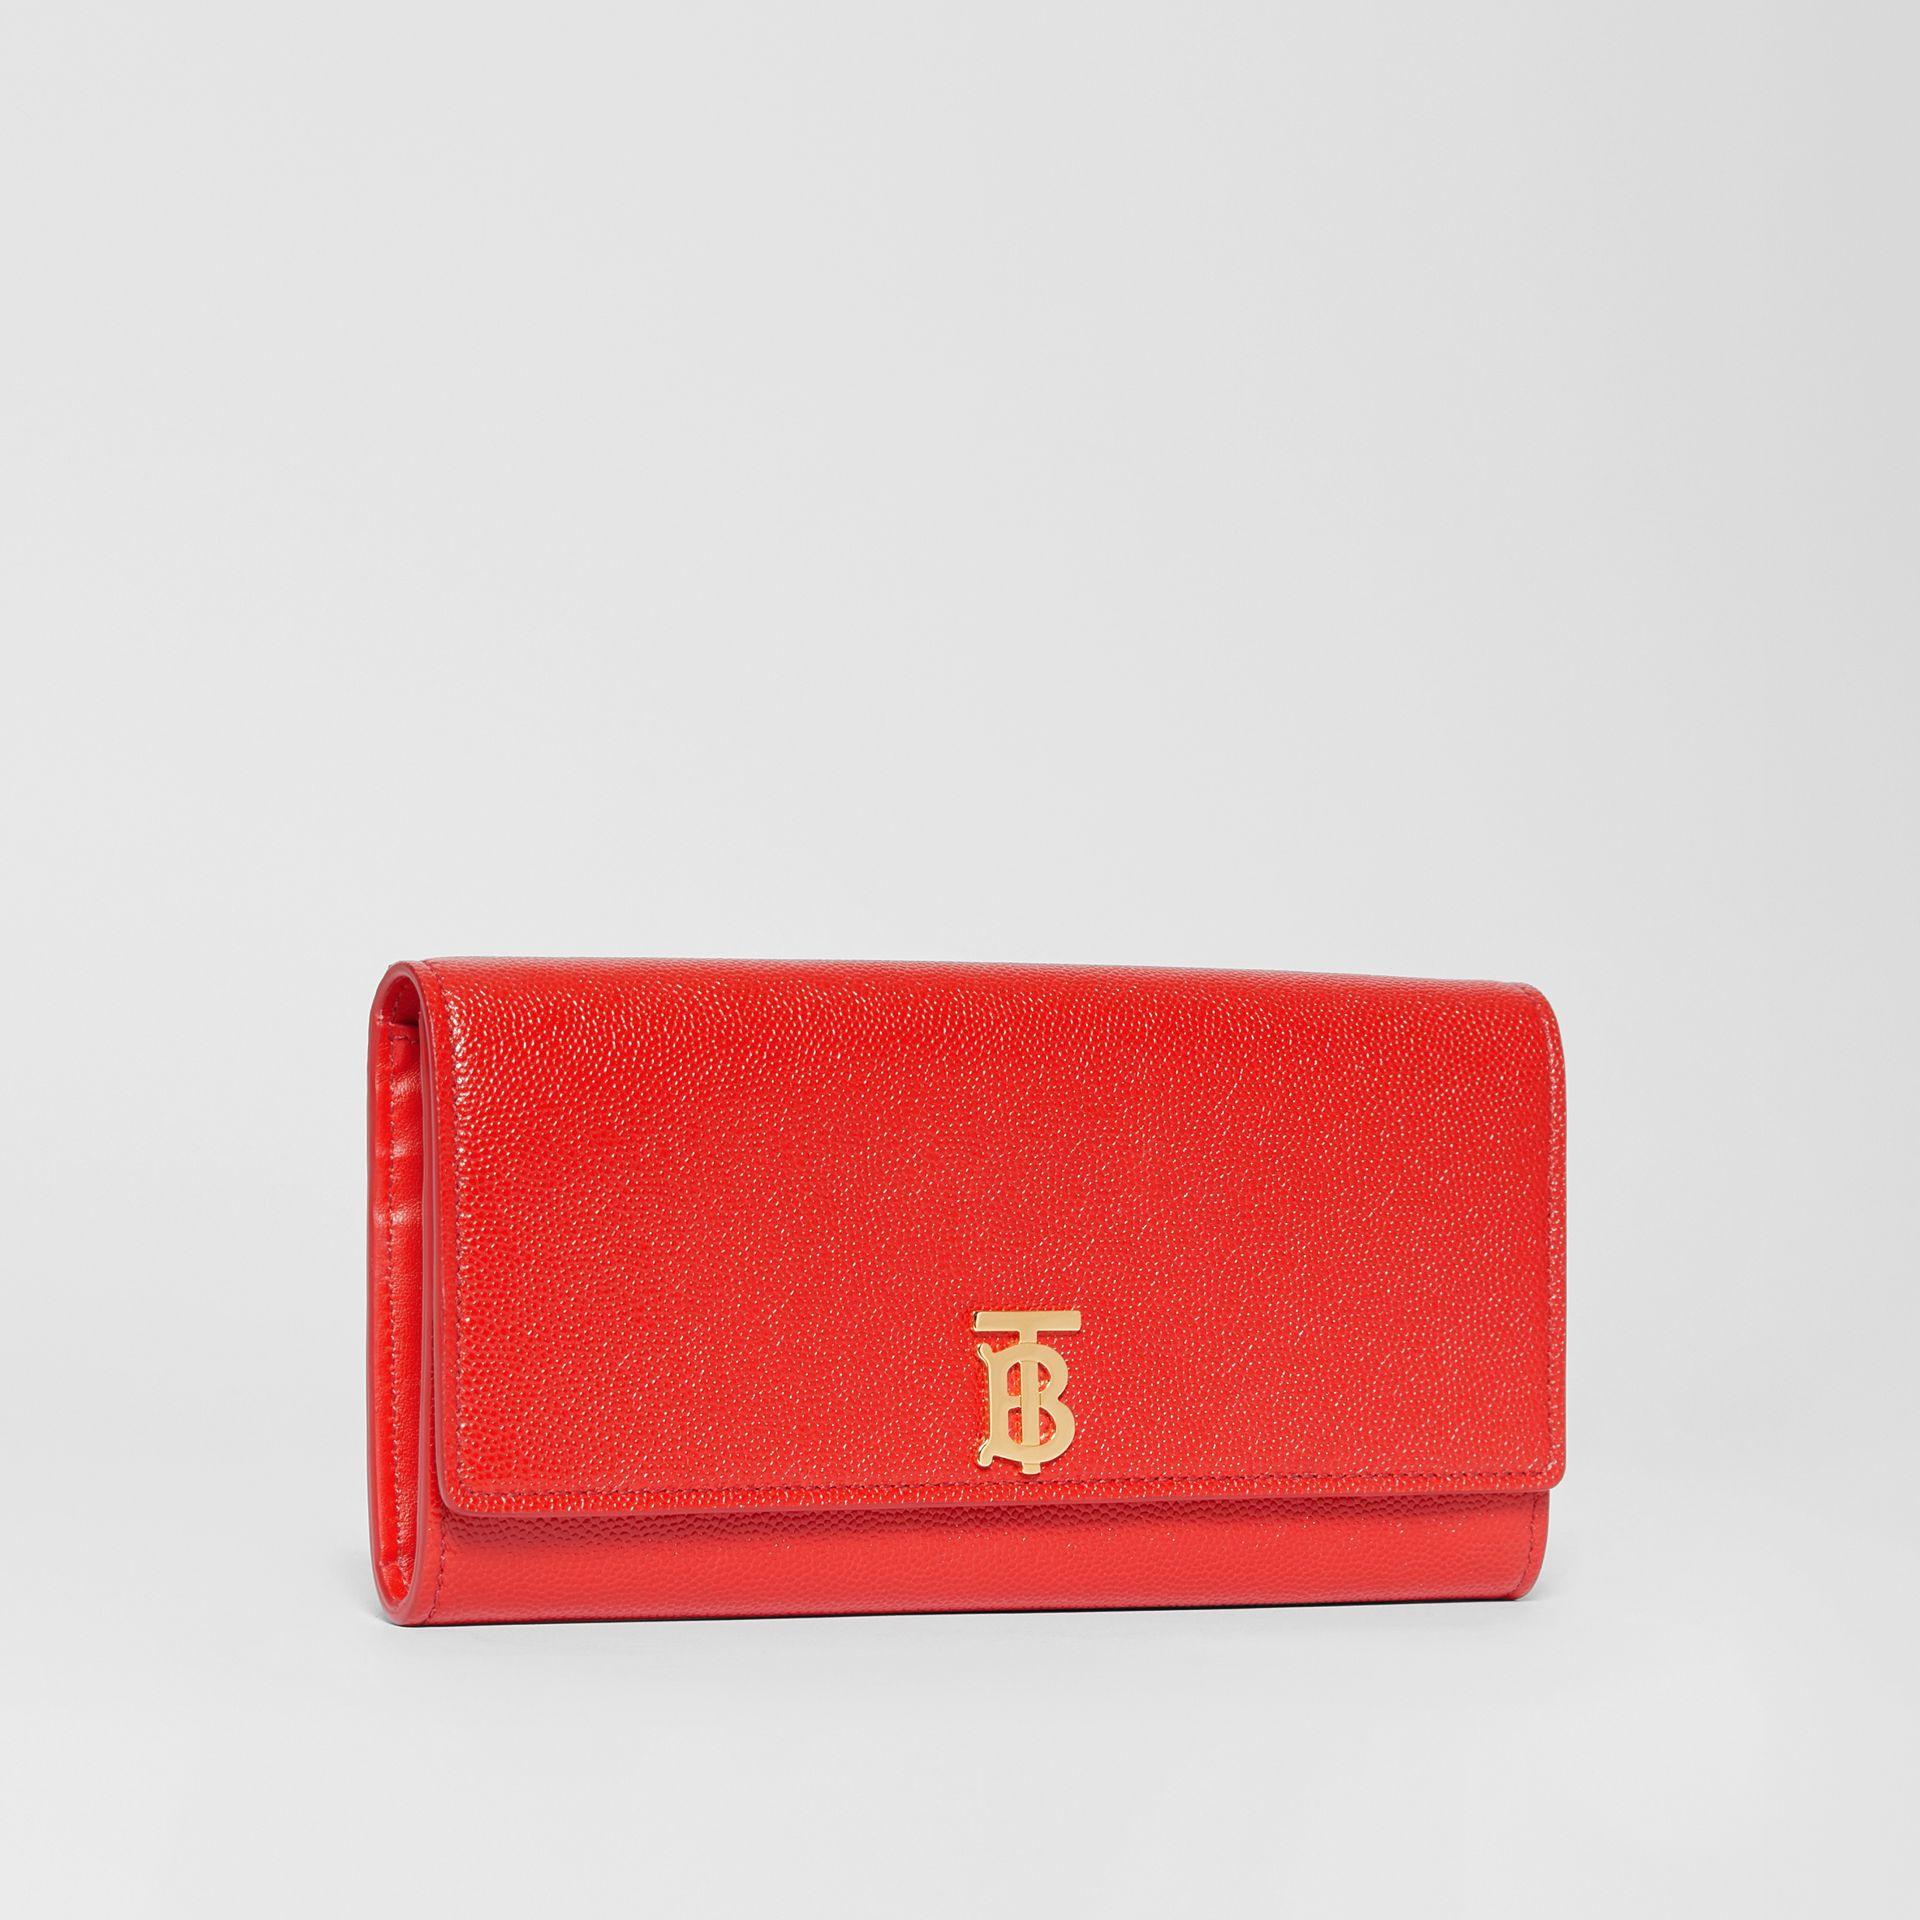 Monogram Motif Grainy Leather Continental Wallet in Bright Red - Women | Burberry - gallery image 4